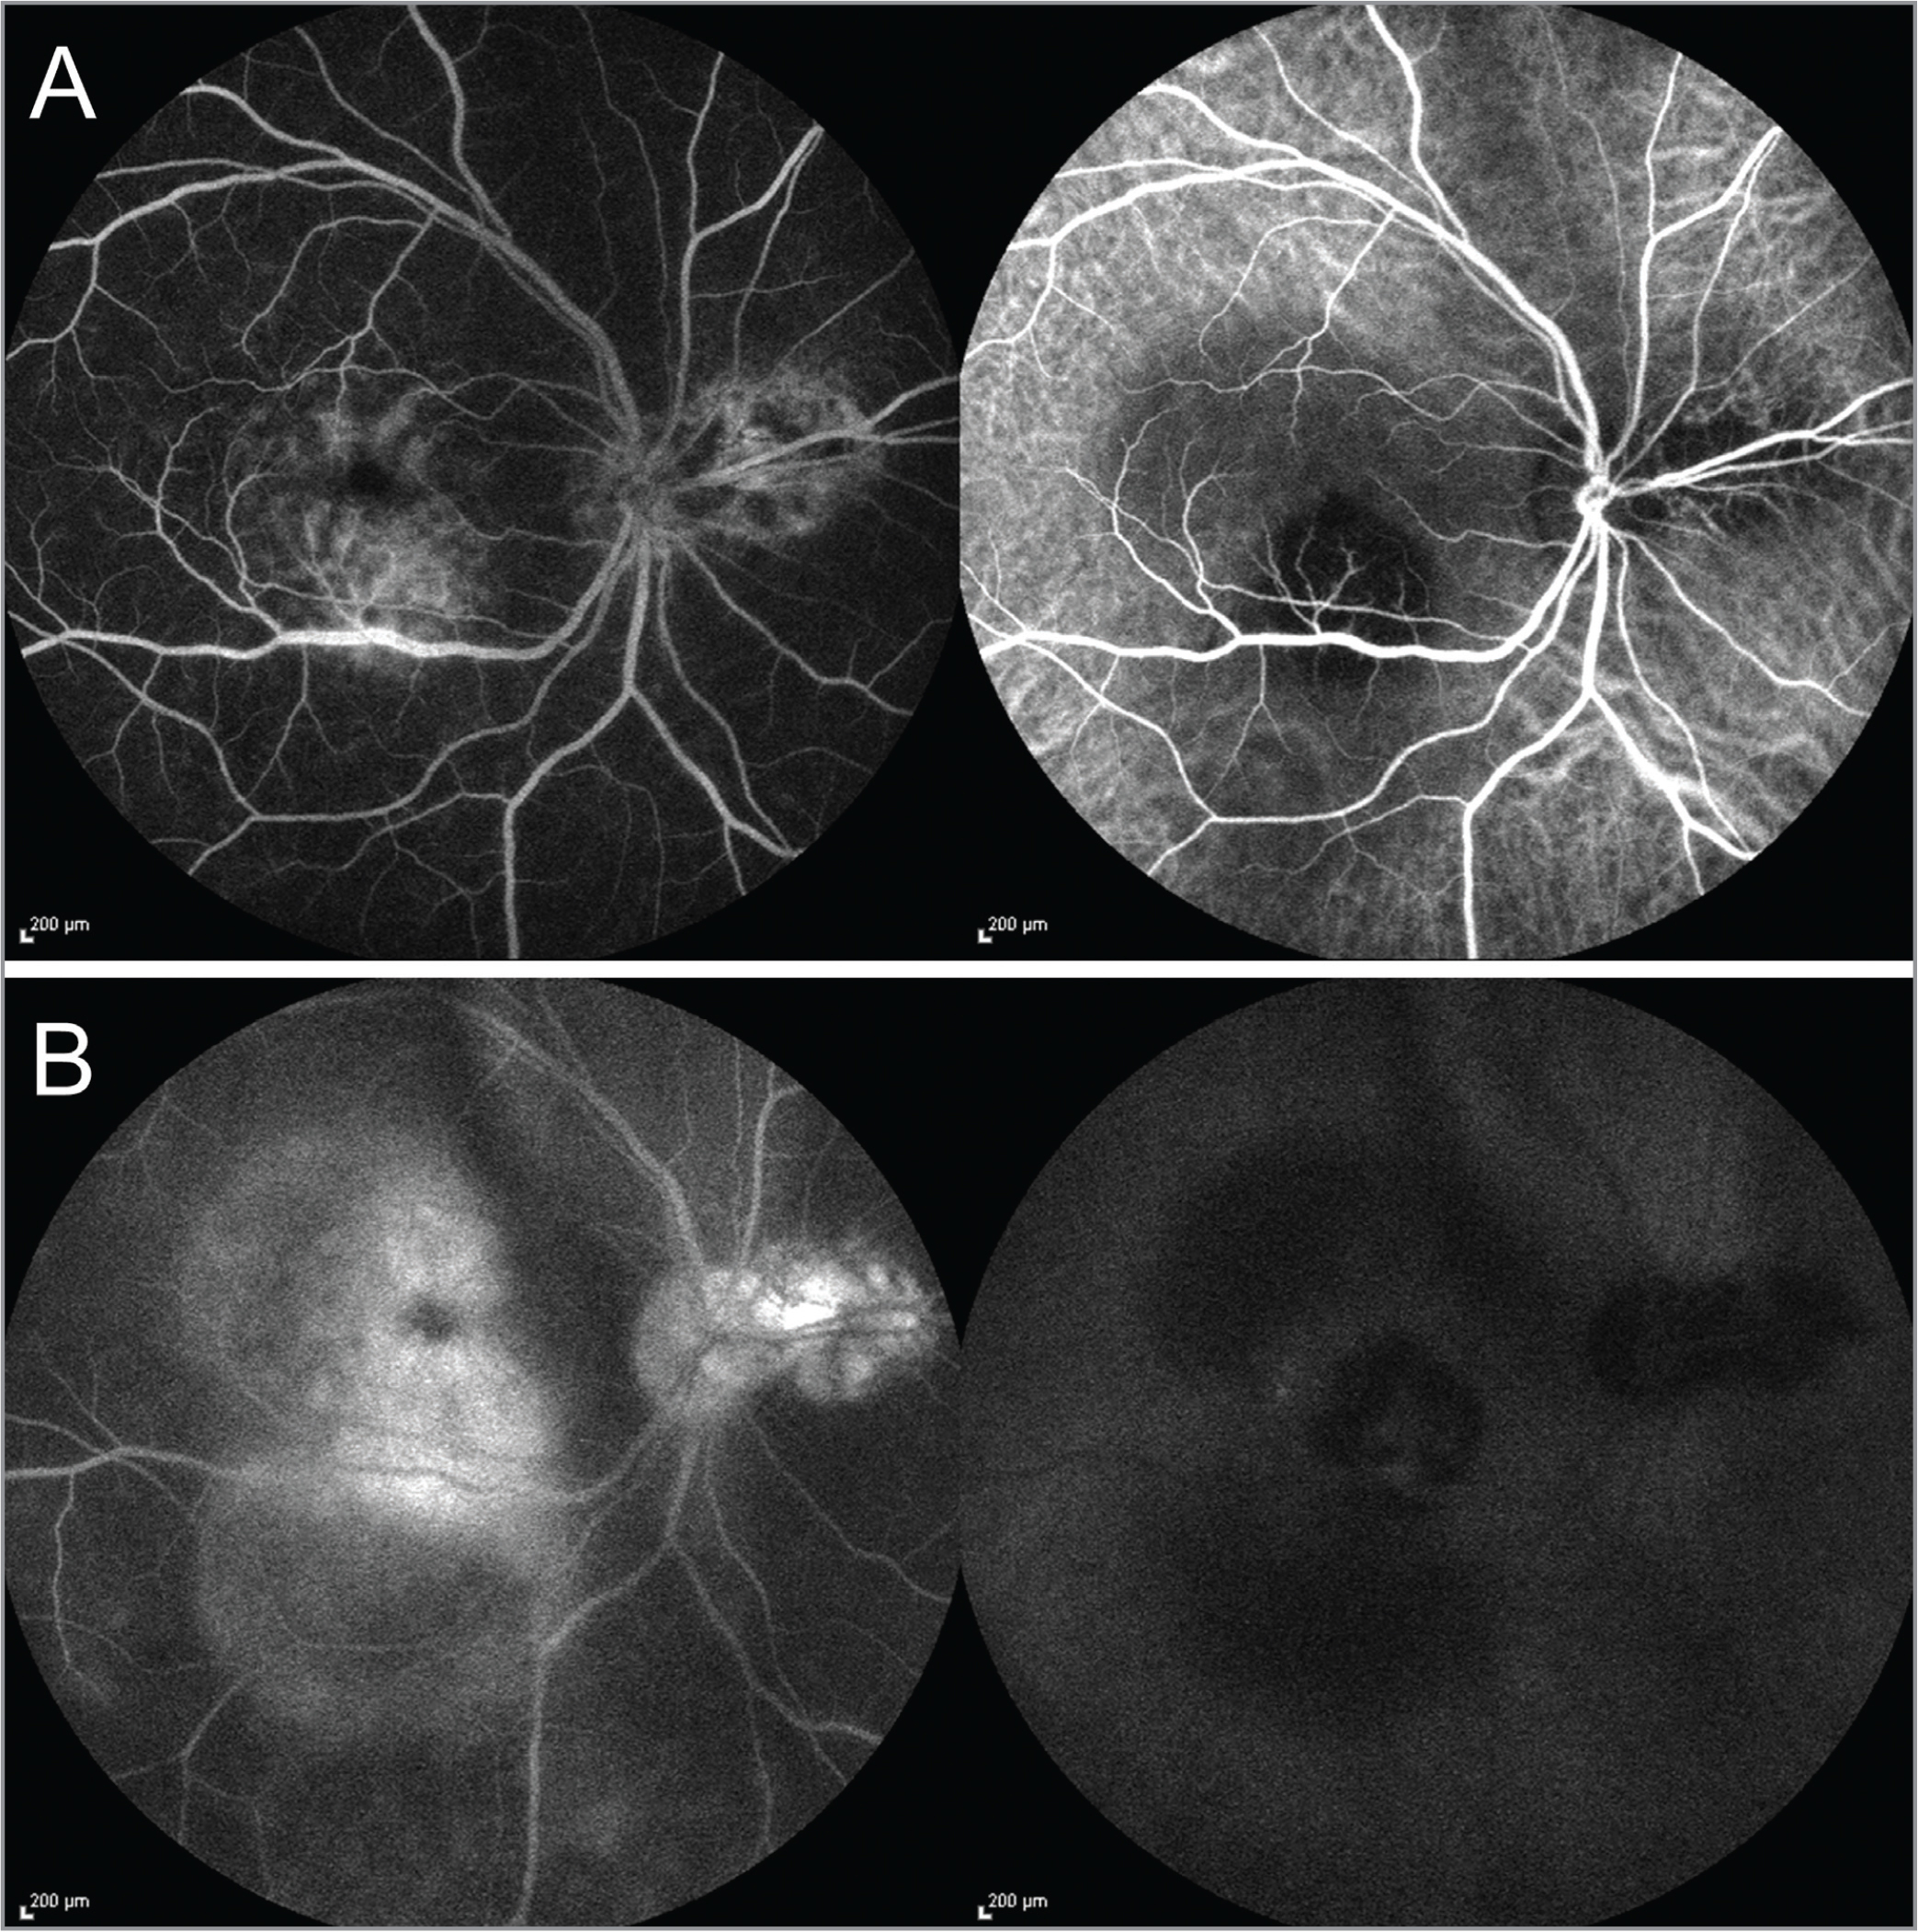 Combined fluorescein angiography (FA) and indocyanine green angiography (ICGA) of the right eye at presentation. (A) Early phase of FA shows stippled hyperfluorescence just inferior to the fovea and transmission hyperfluorescence corresponding to the chorioretinal scar nasal to the optic disc, whereas the ICGA shows a round hypocyanescent lesion inferior to the fovea and nasal to optic disc. (B) Late phase of FA shows progressive hyperfluorescence with pooling of dye and staining of the healed scar nasal to the optic disc, whereas the ICGA shows persistent hypocyanescence with a faint isocyanescence in the center of the macular lesion and persistent hypocyanescence in the area of the healed chorioretinal scar. These findings suggest that the lesion in posterior pole was active with a relatively full-thickness choroidal granuloma and presence of a healed choroidal lesion with choriocapillaris atrophy nasally. Pooling of the dye in the posterior pole is suggestive of surrounding exudative retinal detachment.